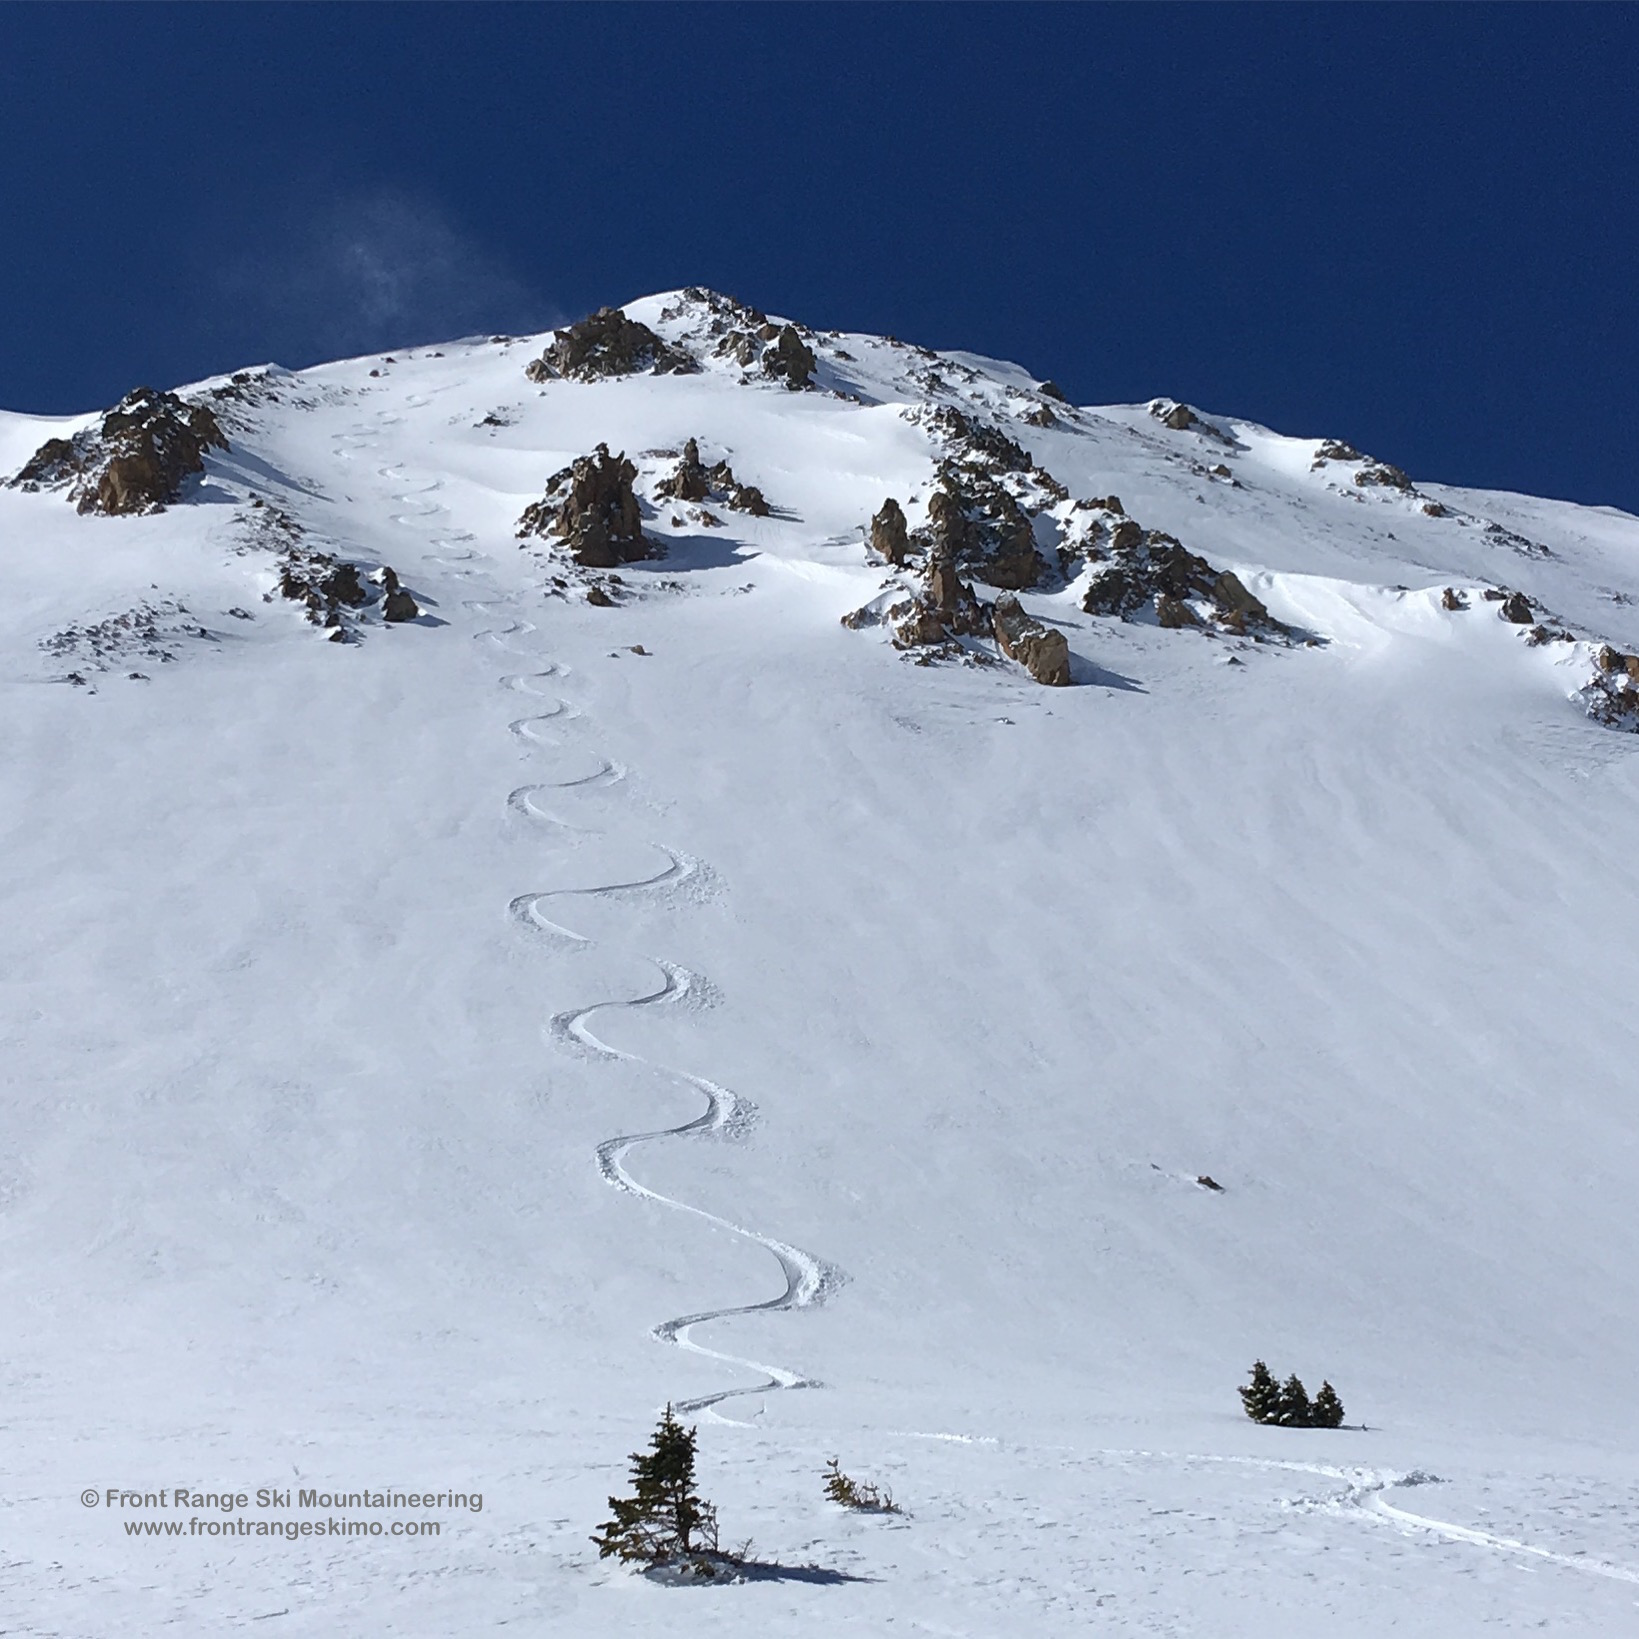 Skiing the North Face of No Name.